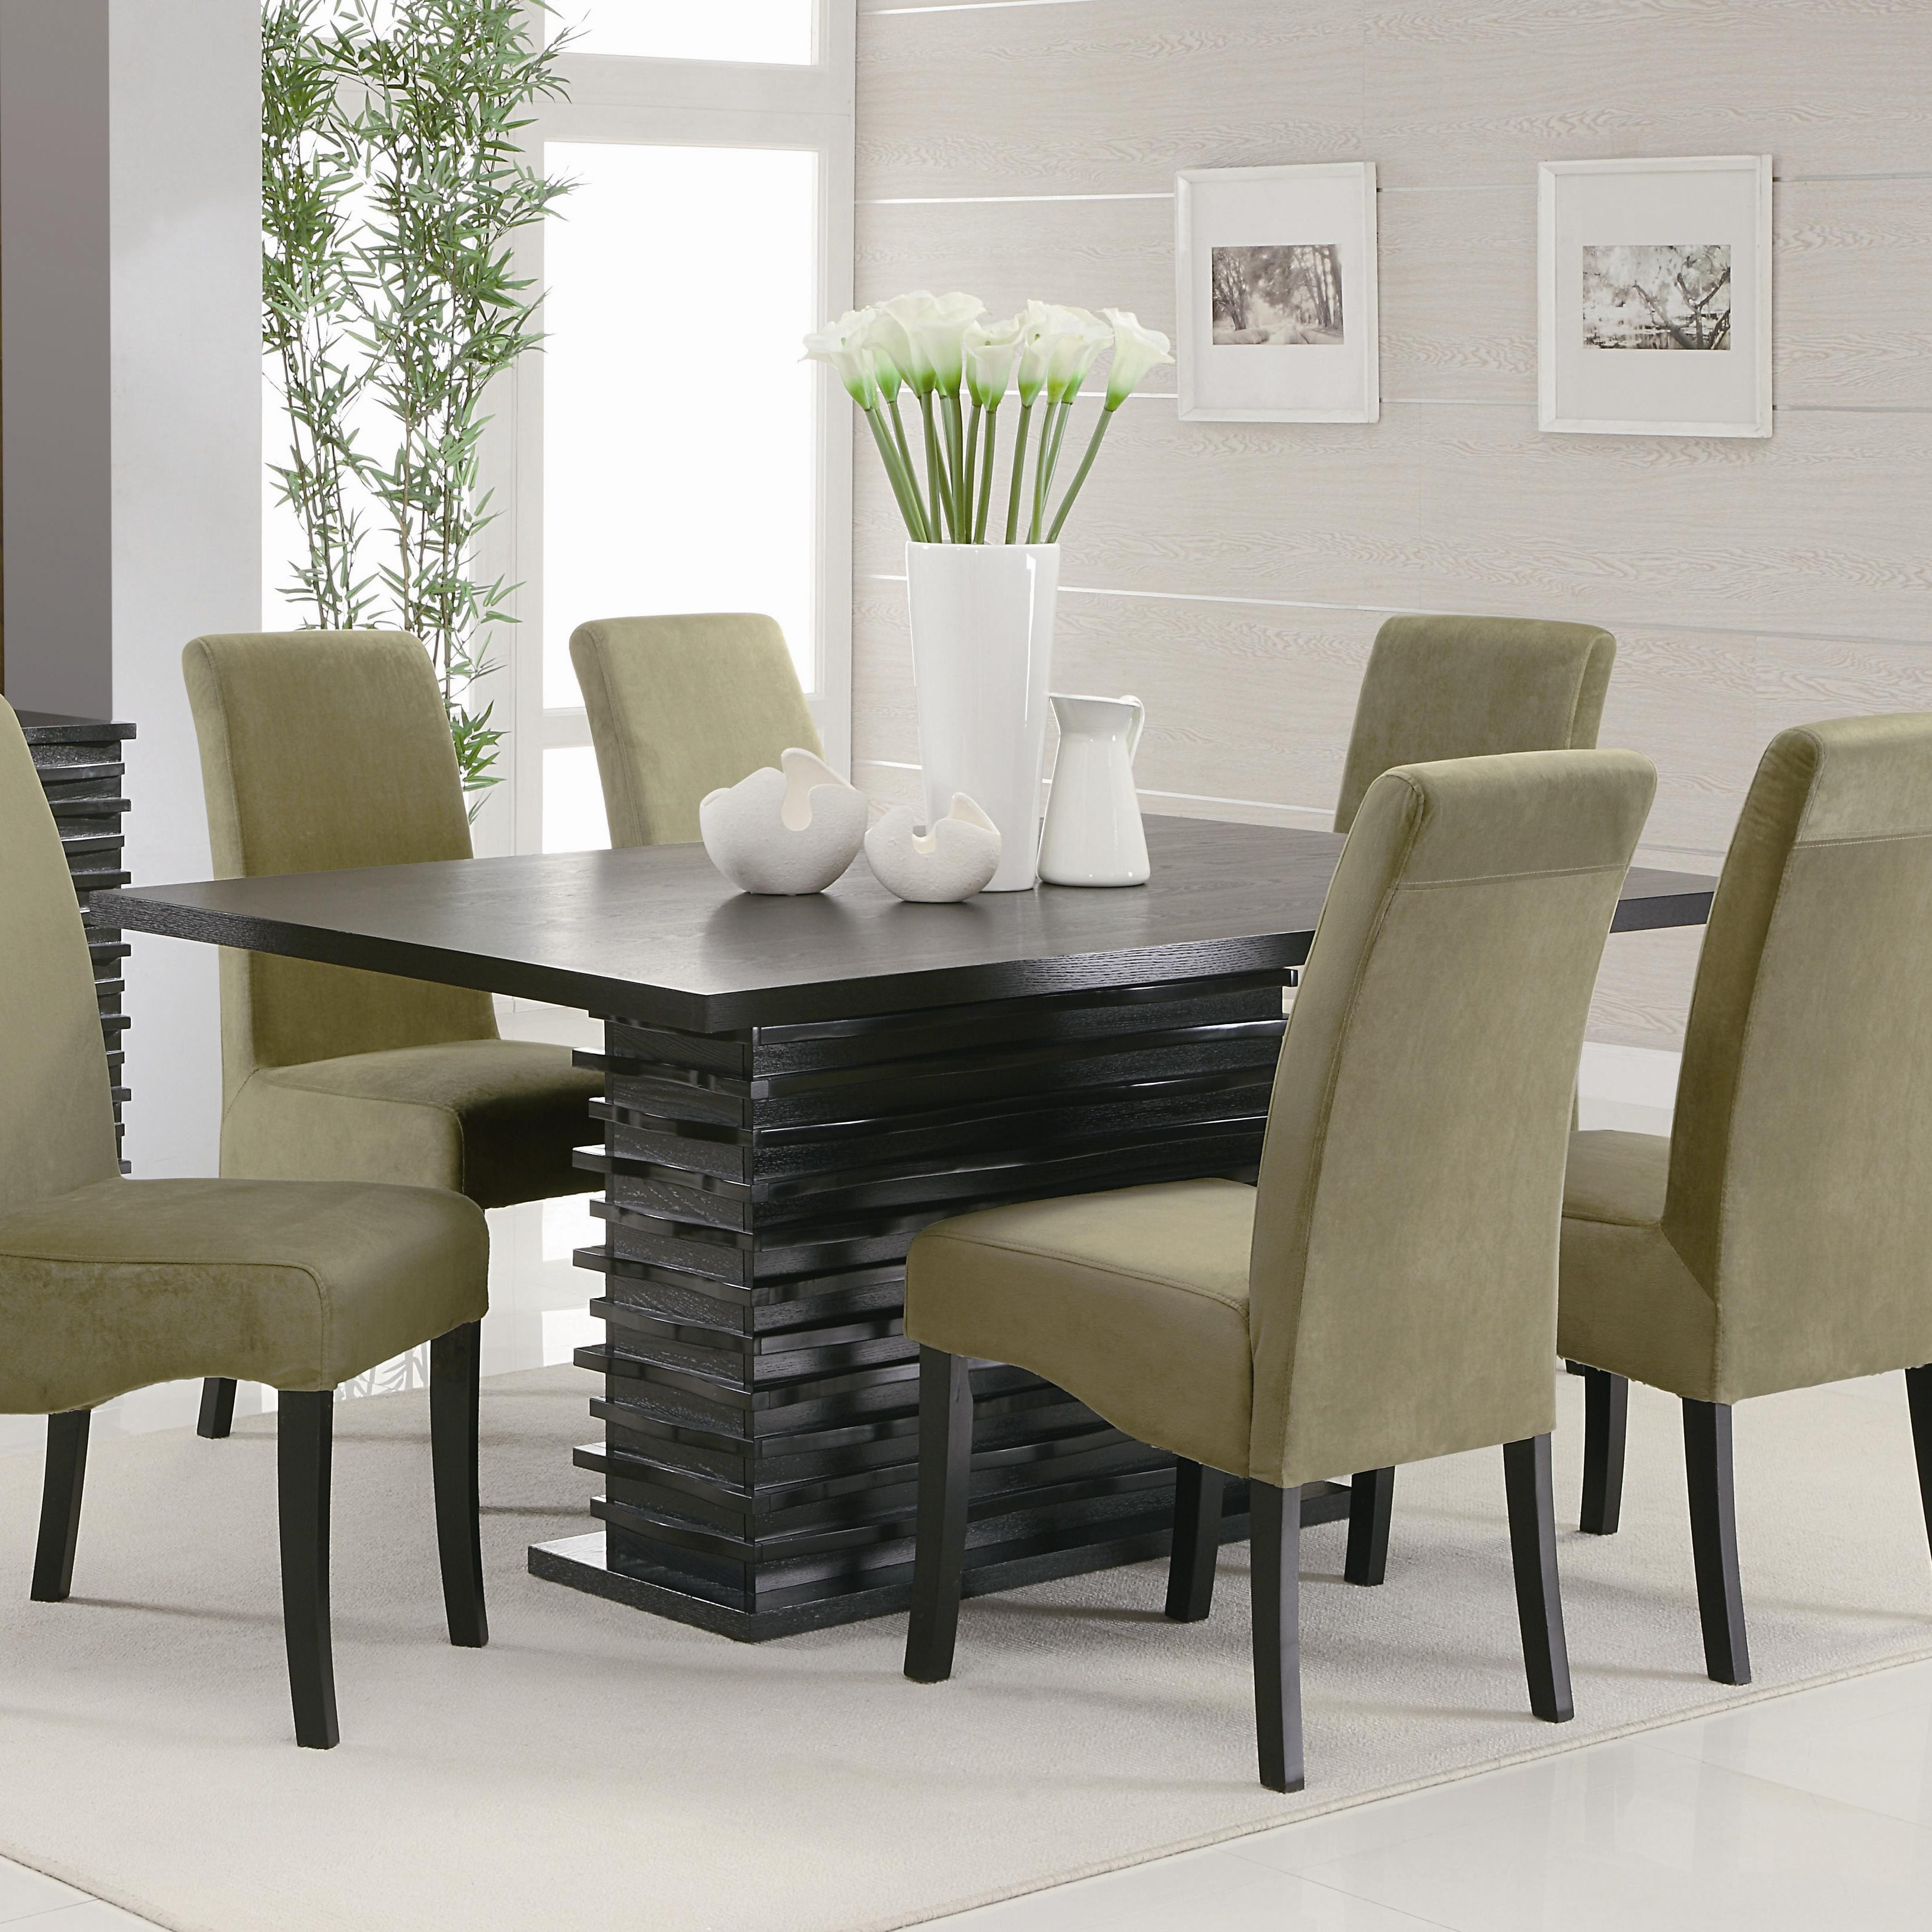 green dining room table and chairs solid oak seats 12 for big family homesfeed rectangle black wooden combined with cream leather legs white floor